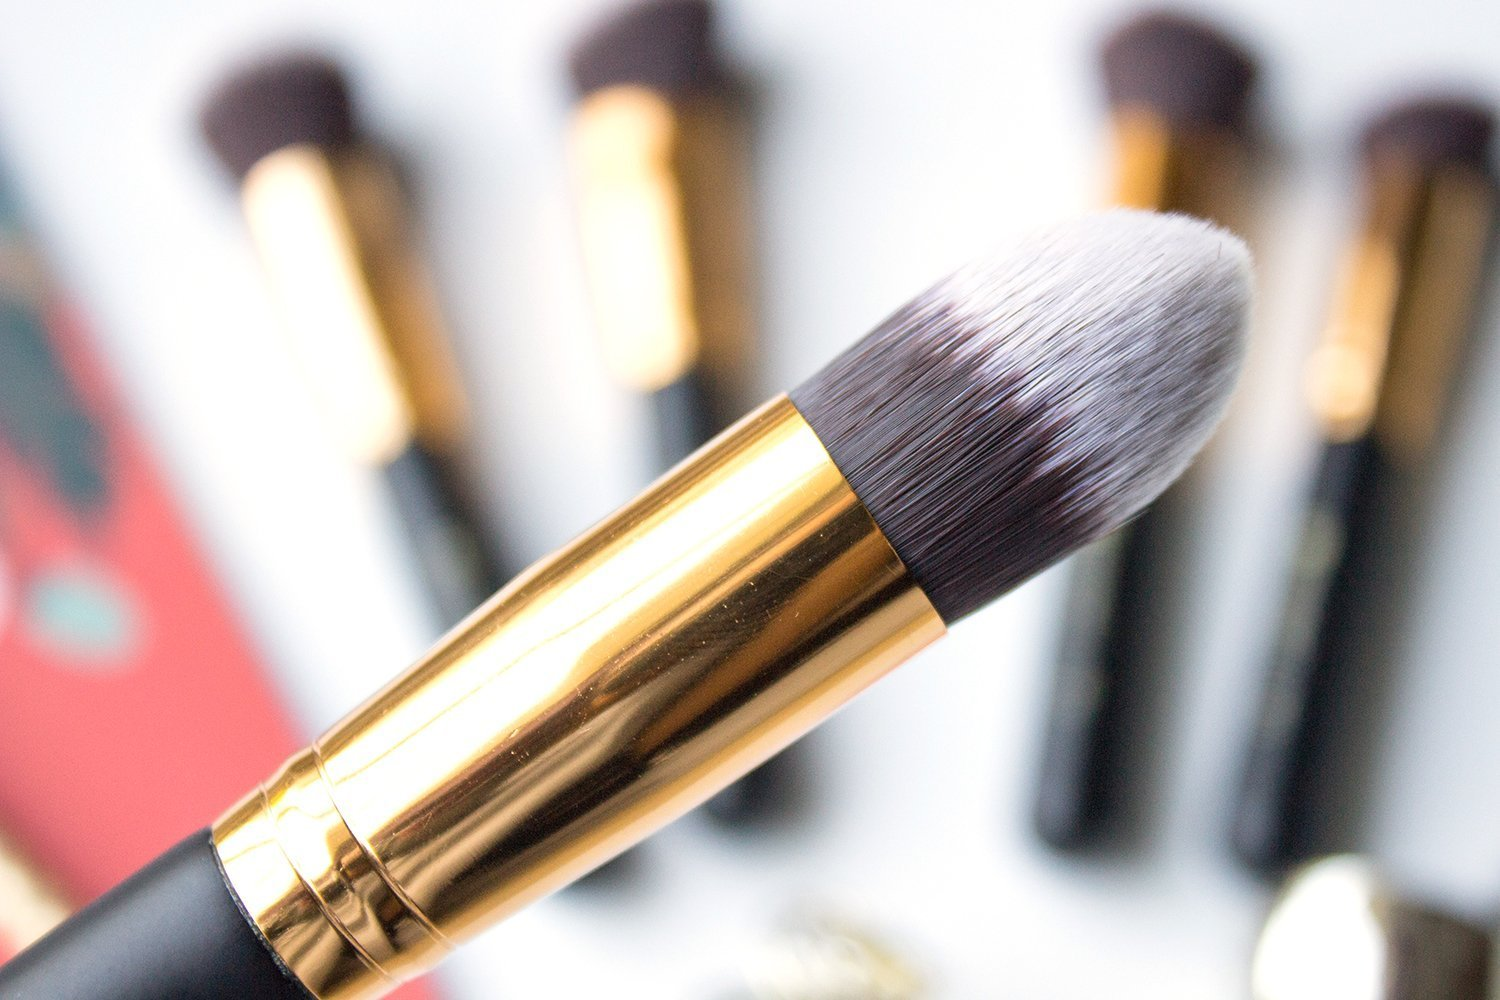 2f990c22639d The precise tip of this brush is great for applying product to targeted  areas of the face or for blending around tight spaces like the curves of  your ...